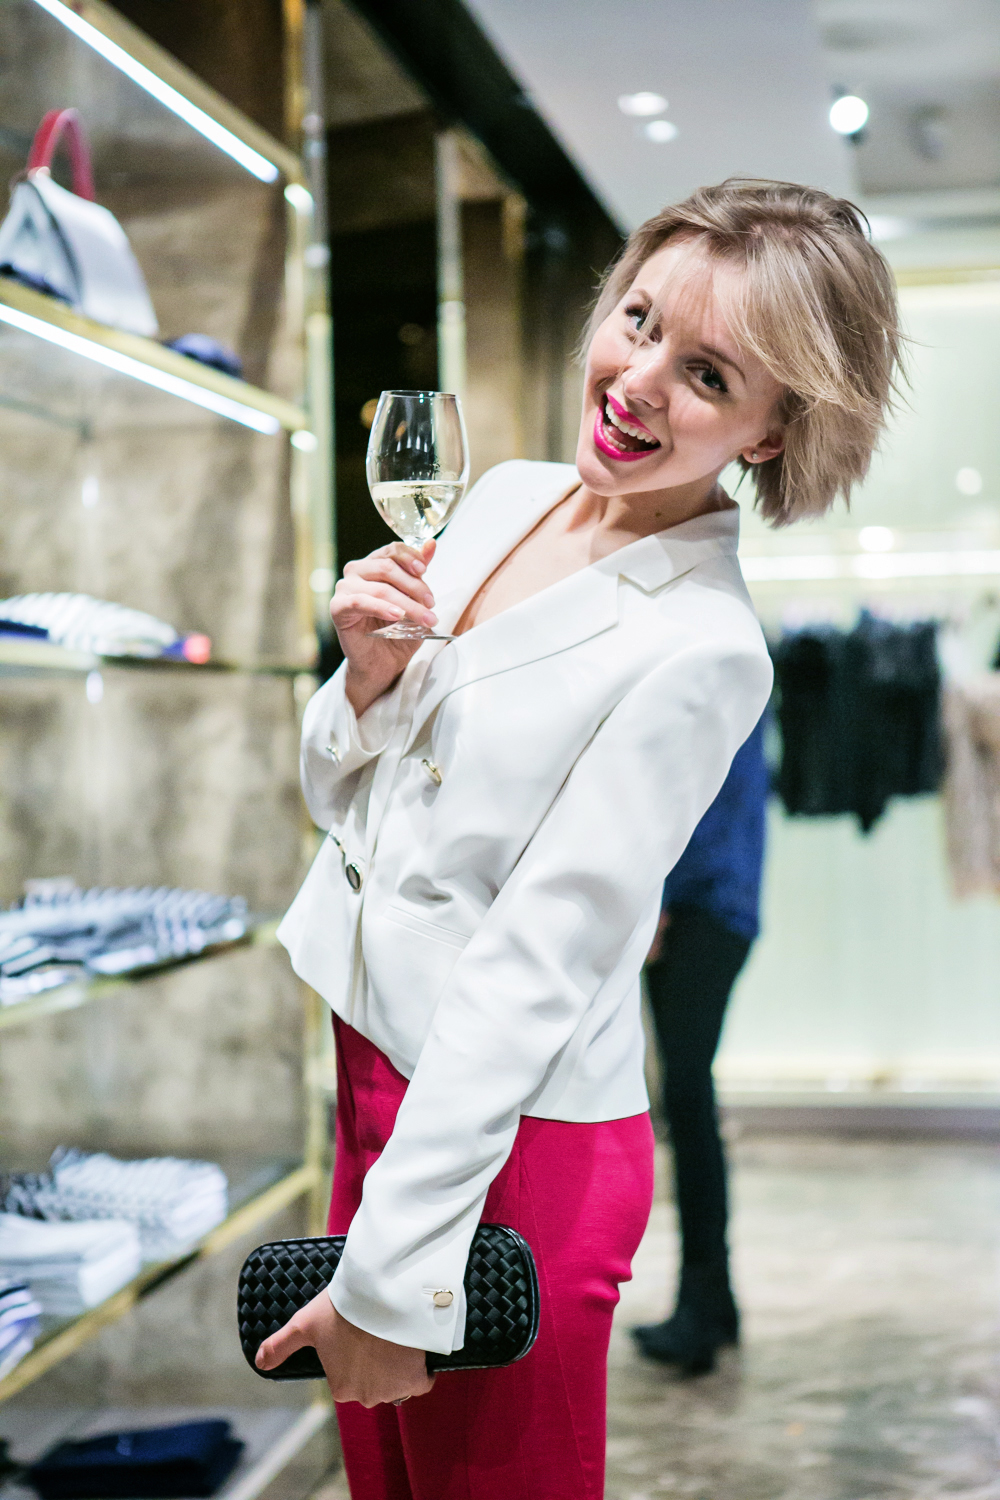 Looking Good in the Kitchen: 4 Key Kitchen Fashion Tips